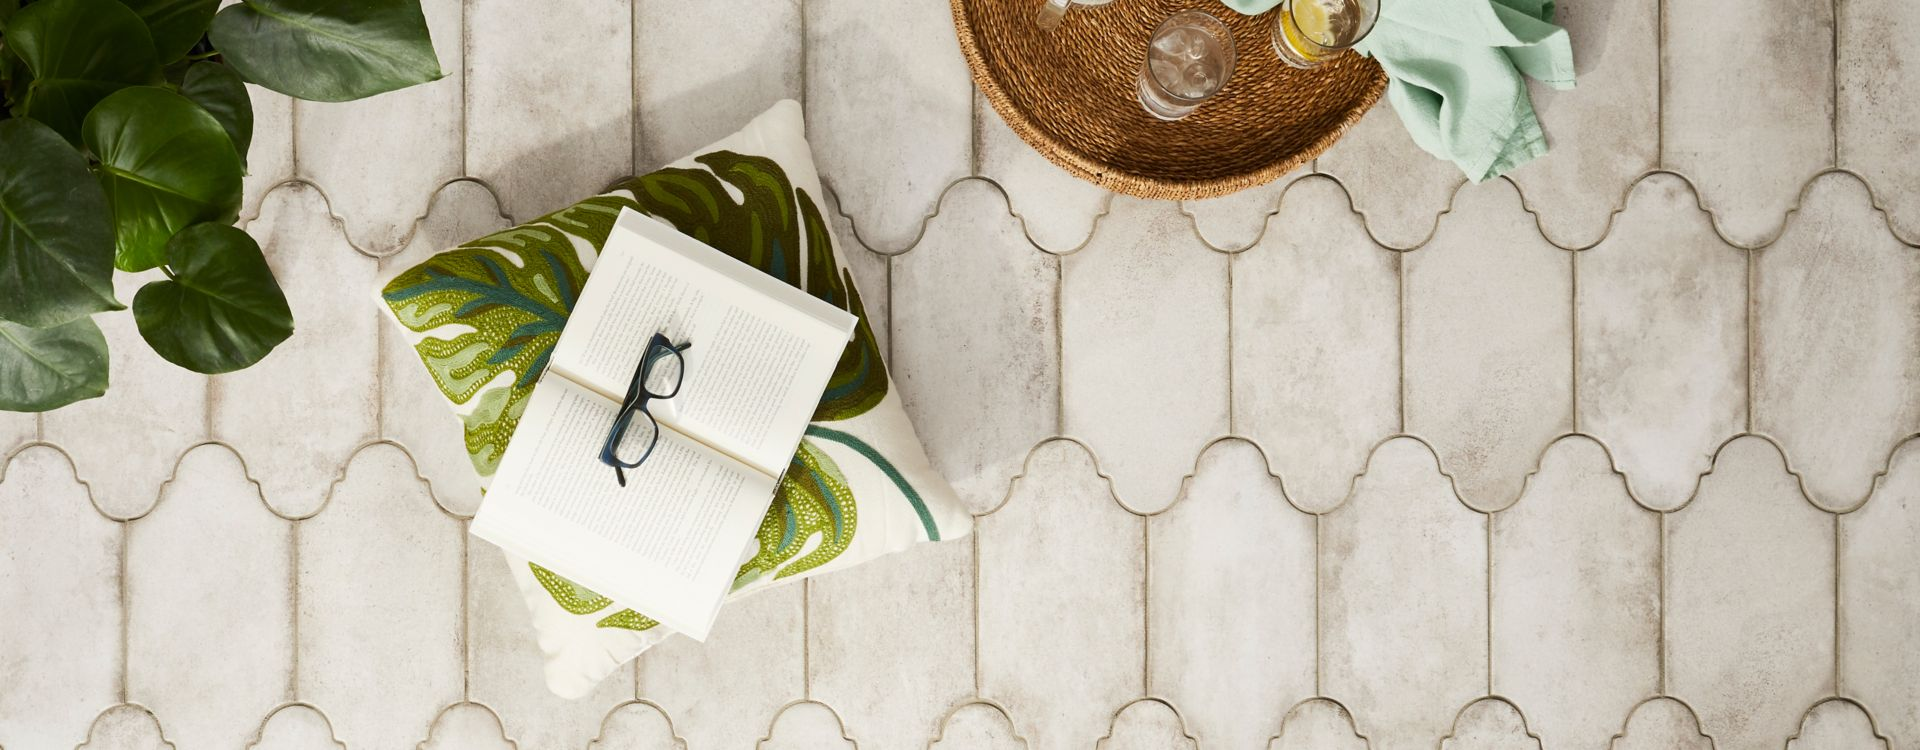 Cream outdoor patio tile.